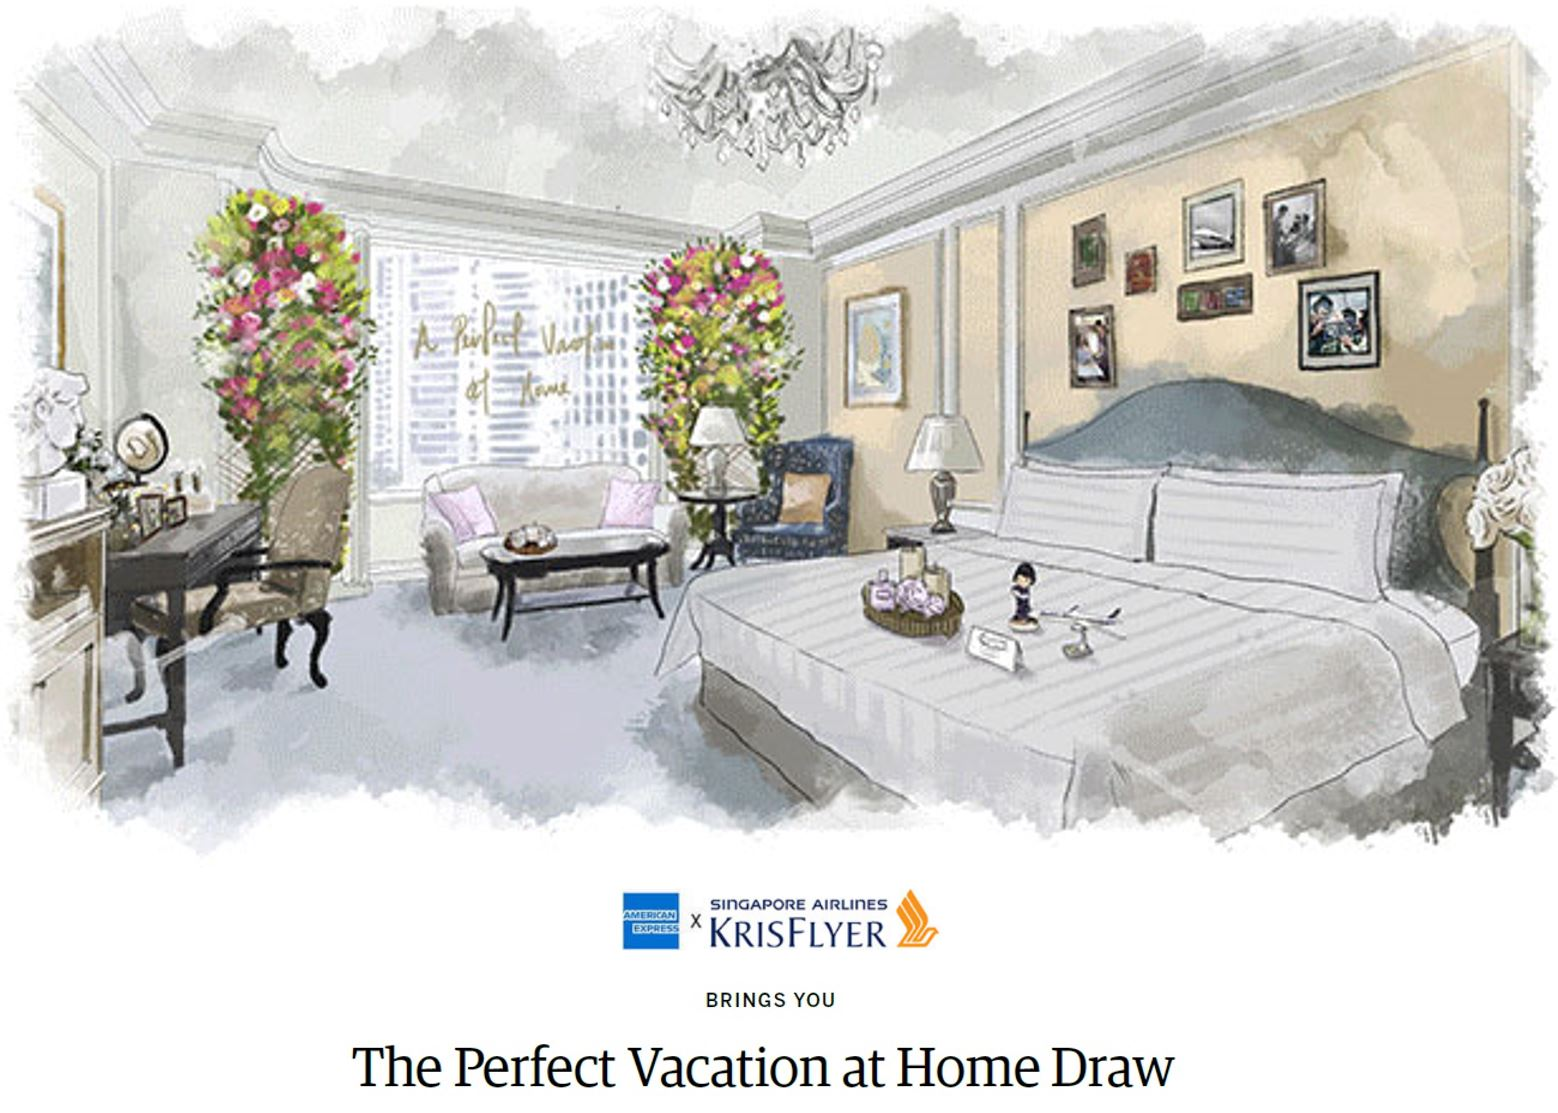 Win 'The Perfect Vacation at Home' with American Express Singapore Airlines Credit Cards